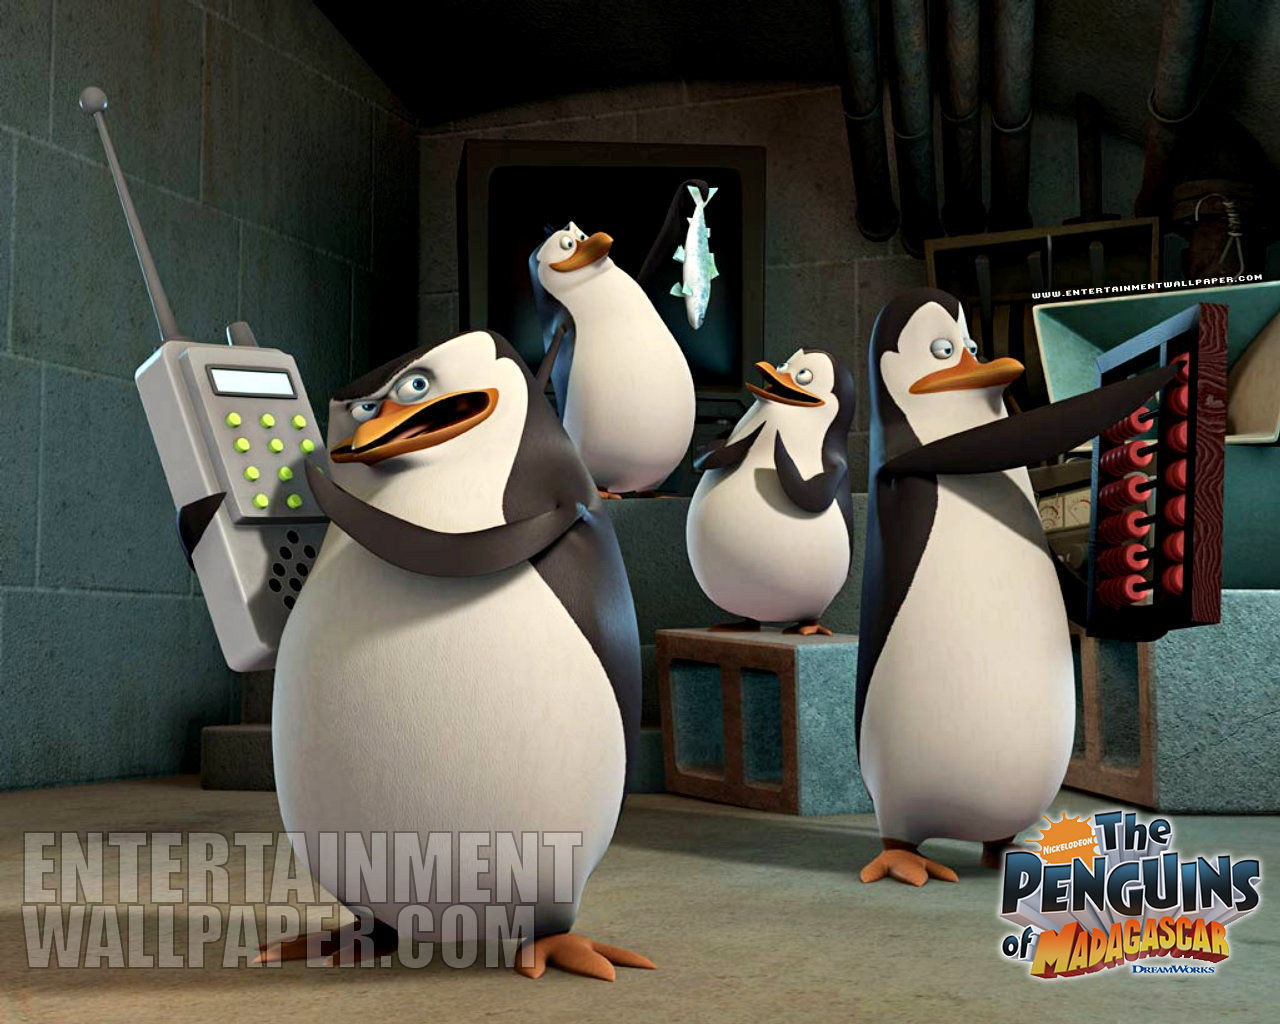 Penguins of Madagascar wallpaper